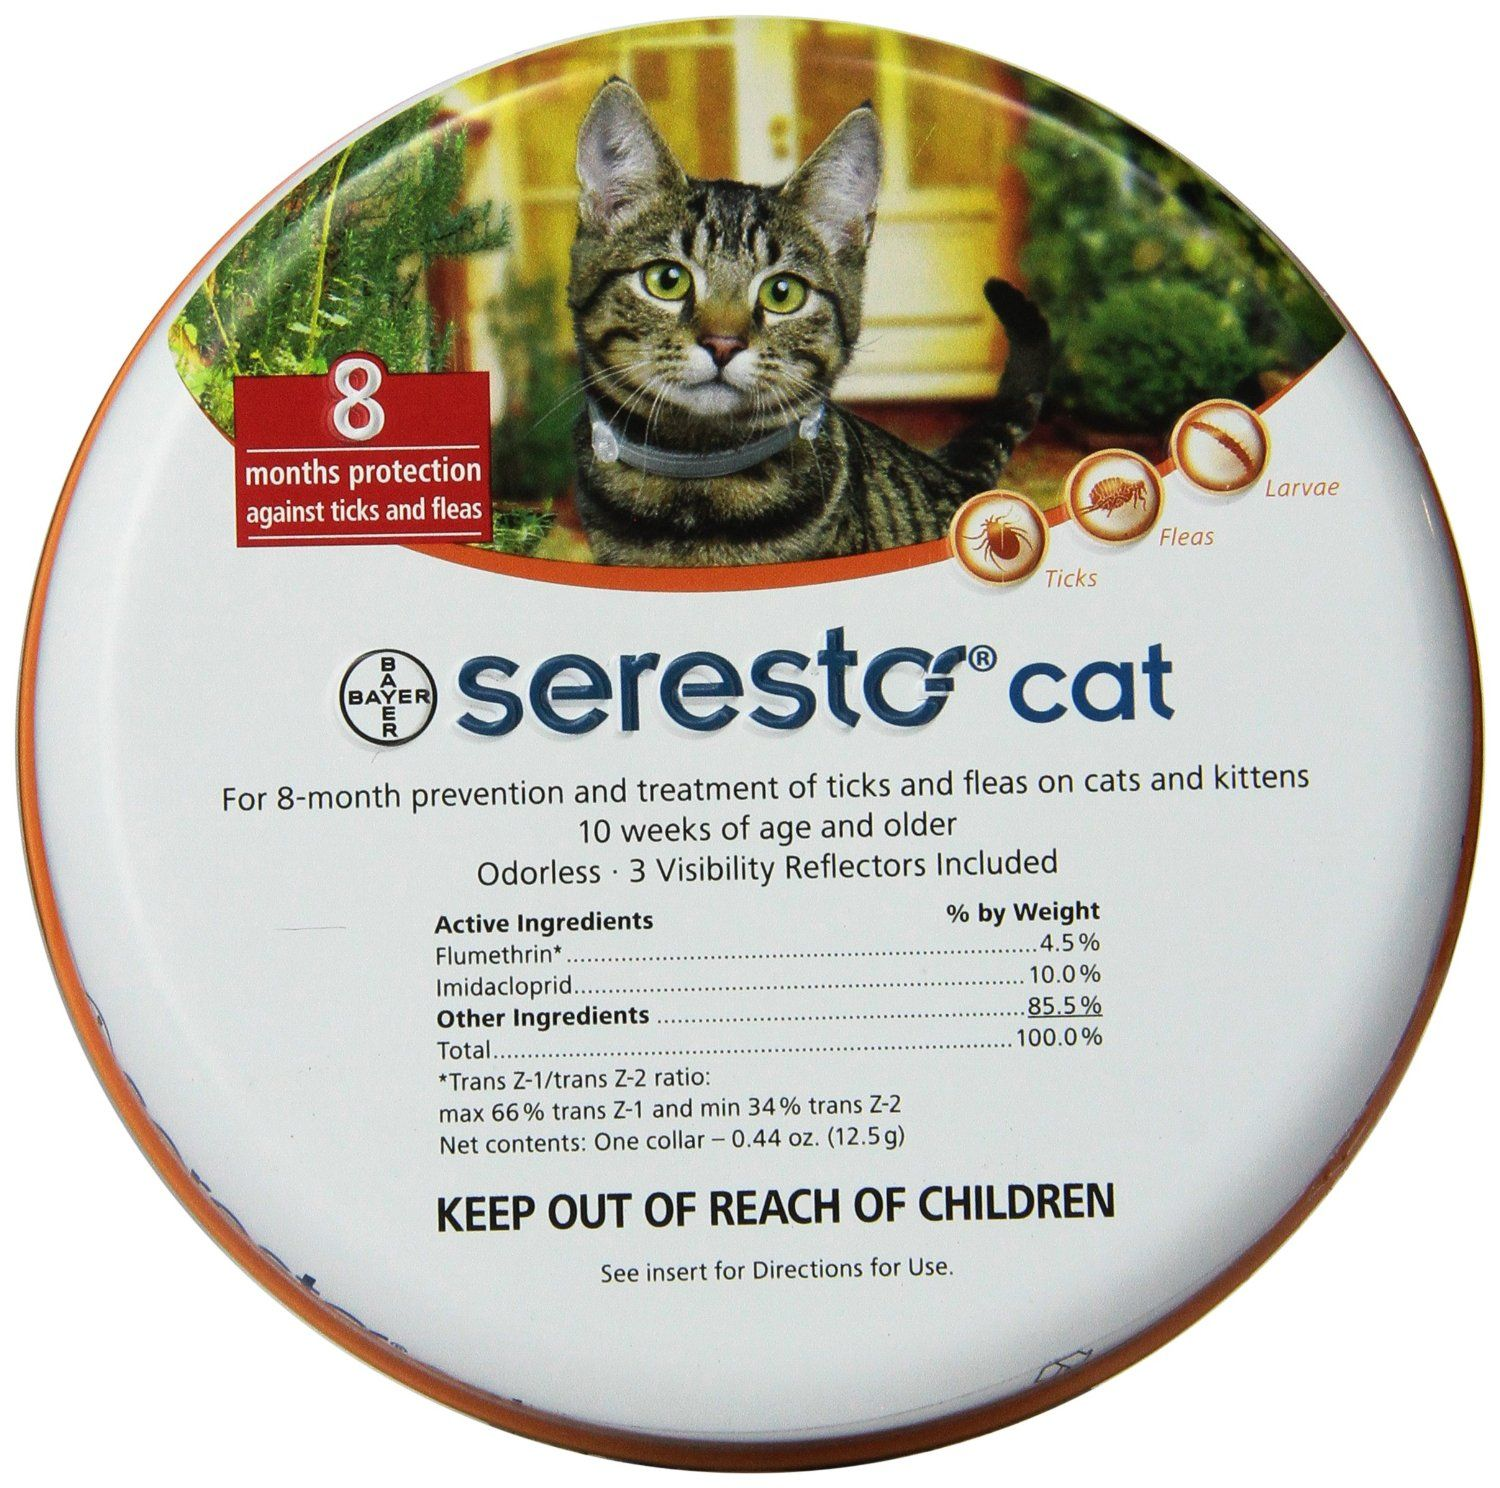 Sale: $43.98 + $4.95 shipping You Save: $35.01 (44%)         8 month Flea & Tick protection     Veterinarian Recommended     Non-greasy, odorless     Available in three sizes, large dog, small dog and cat  VISIT:  http://flealicetickcontrol.blogspot.com/